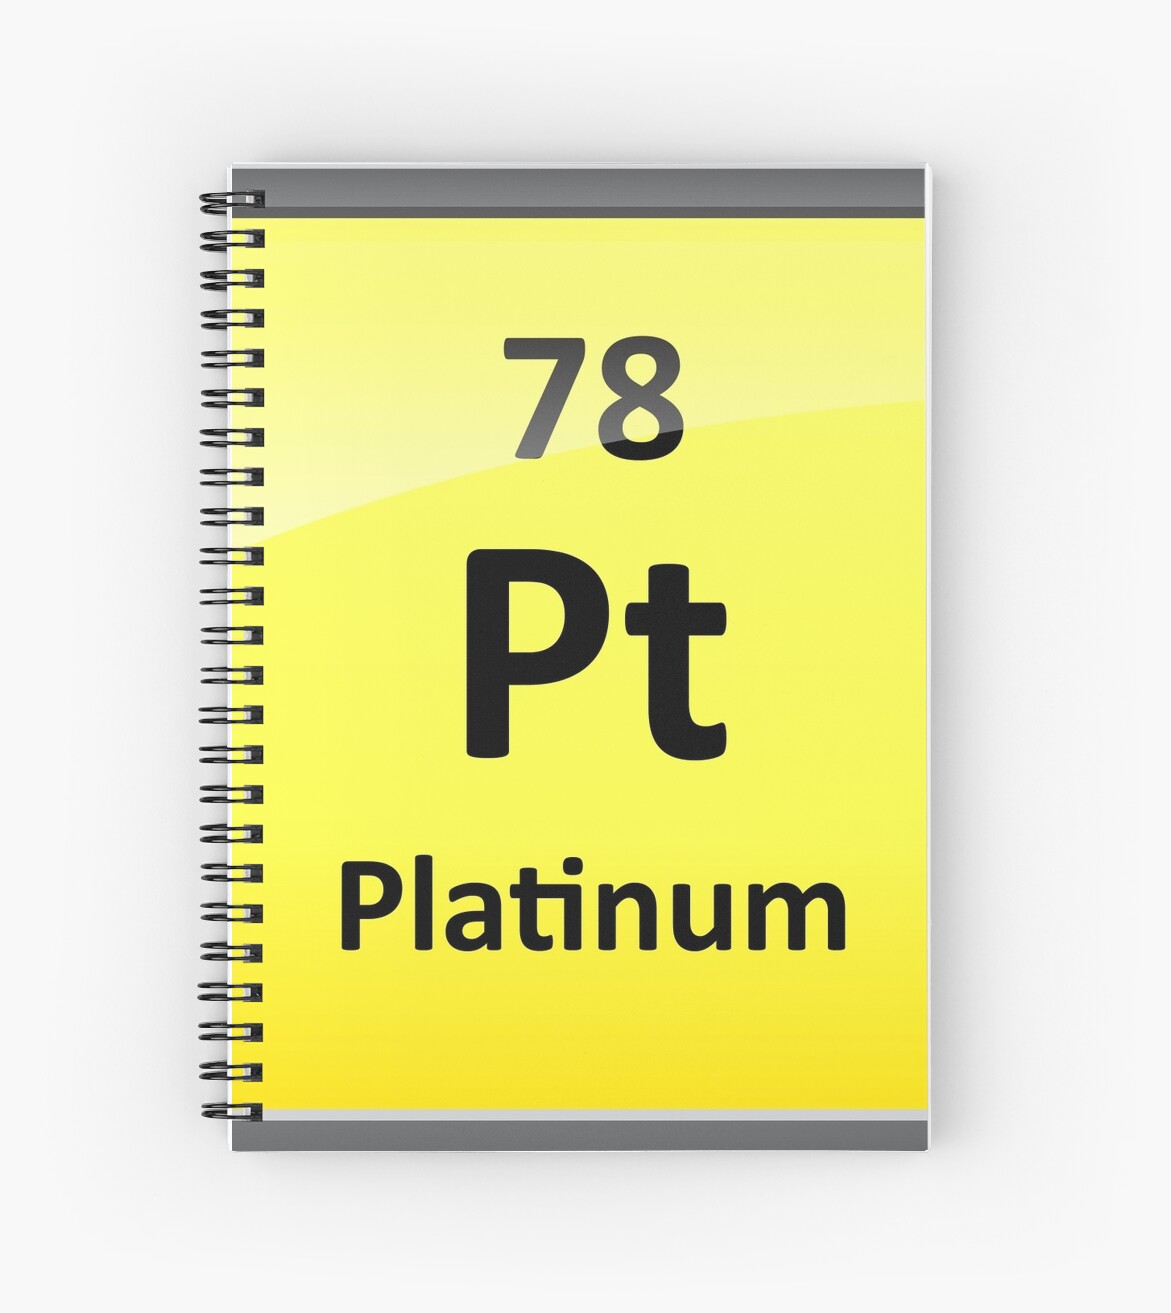 facts element metal radioactive ruthenium symbol chemistry is discovery a properties learner uses platinum it